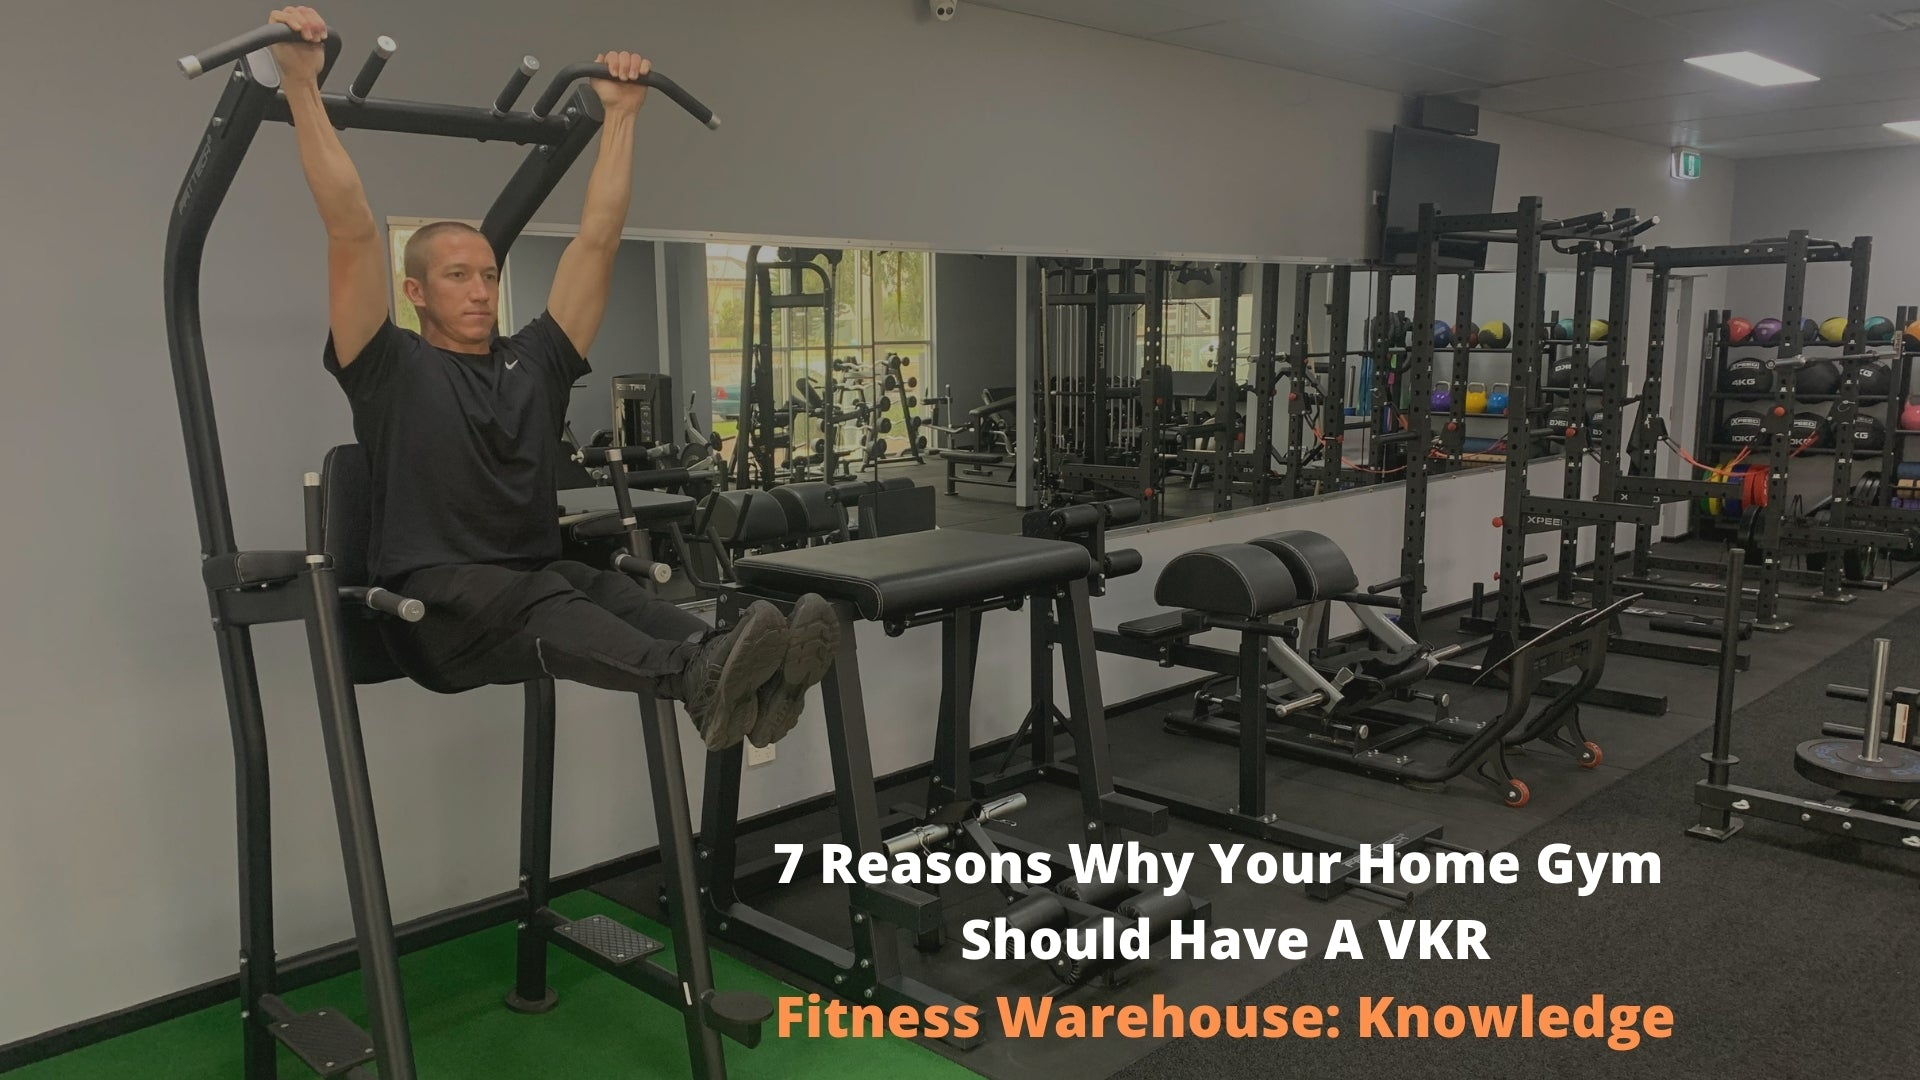 7 Reasons Why Your Home Gym Should Have A VKR